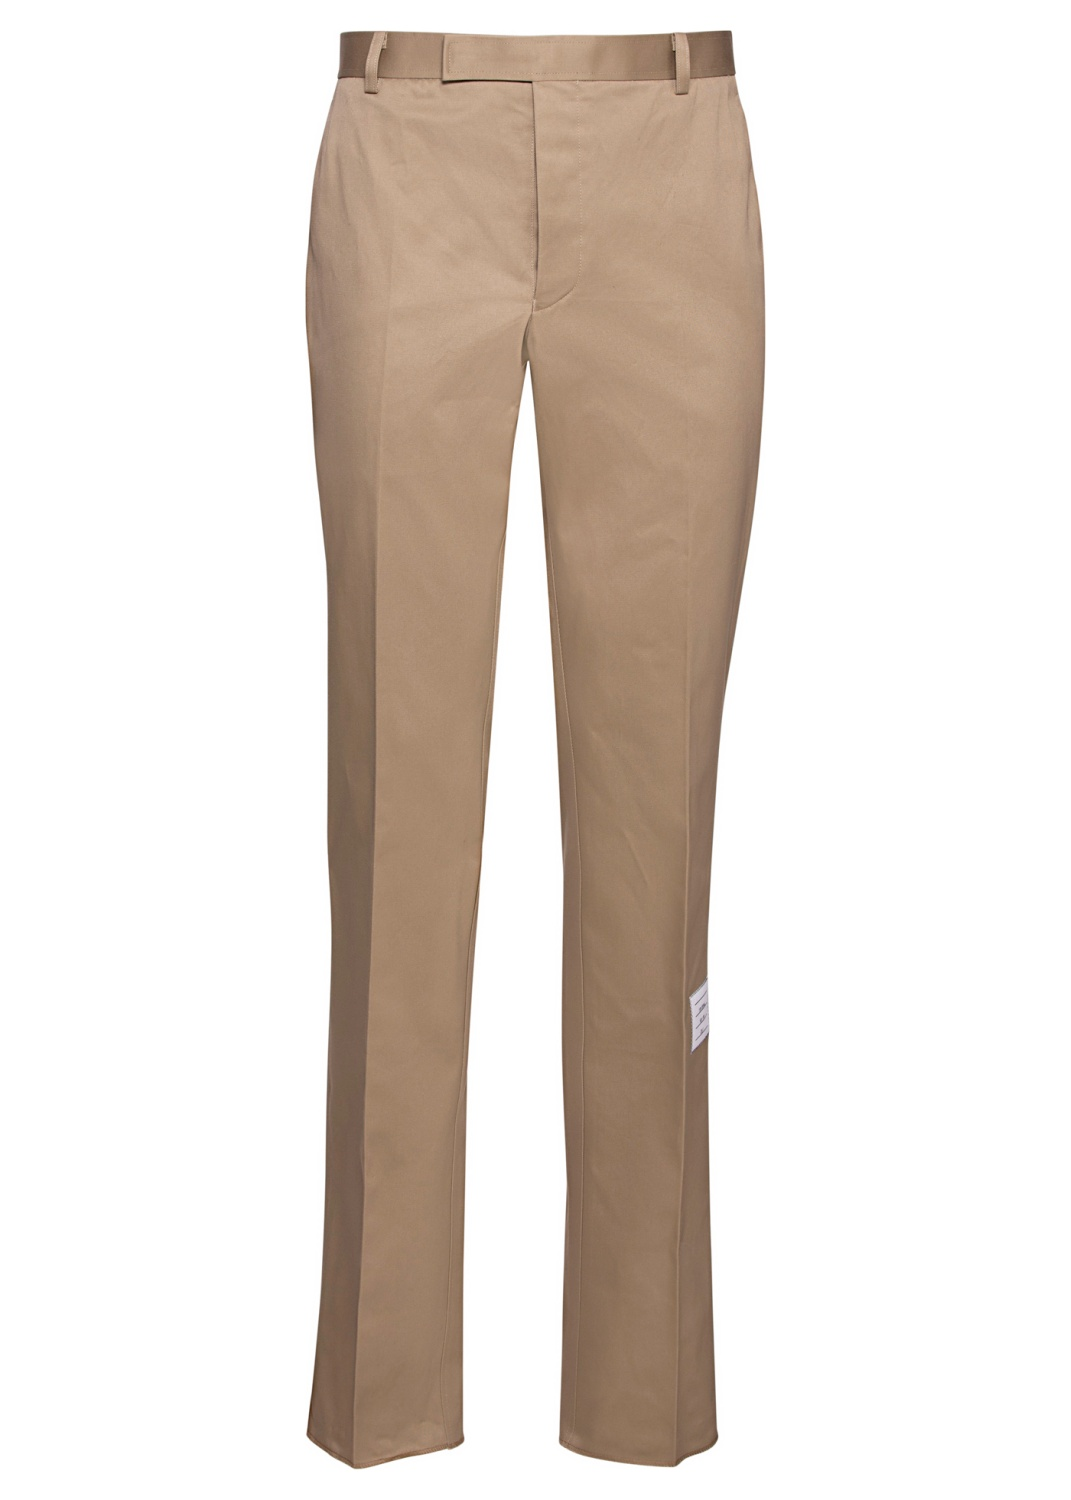 UNCONSTRUCTED CHINO TROUSERS image number 0